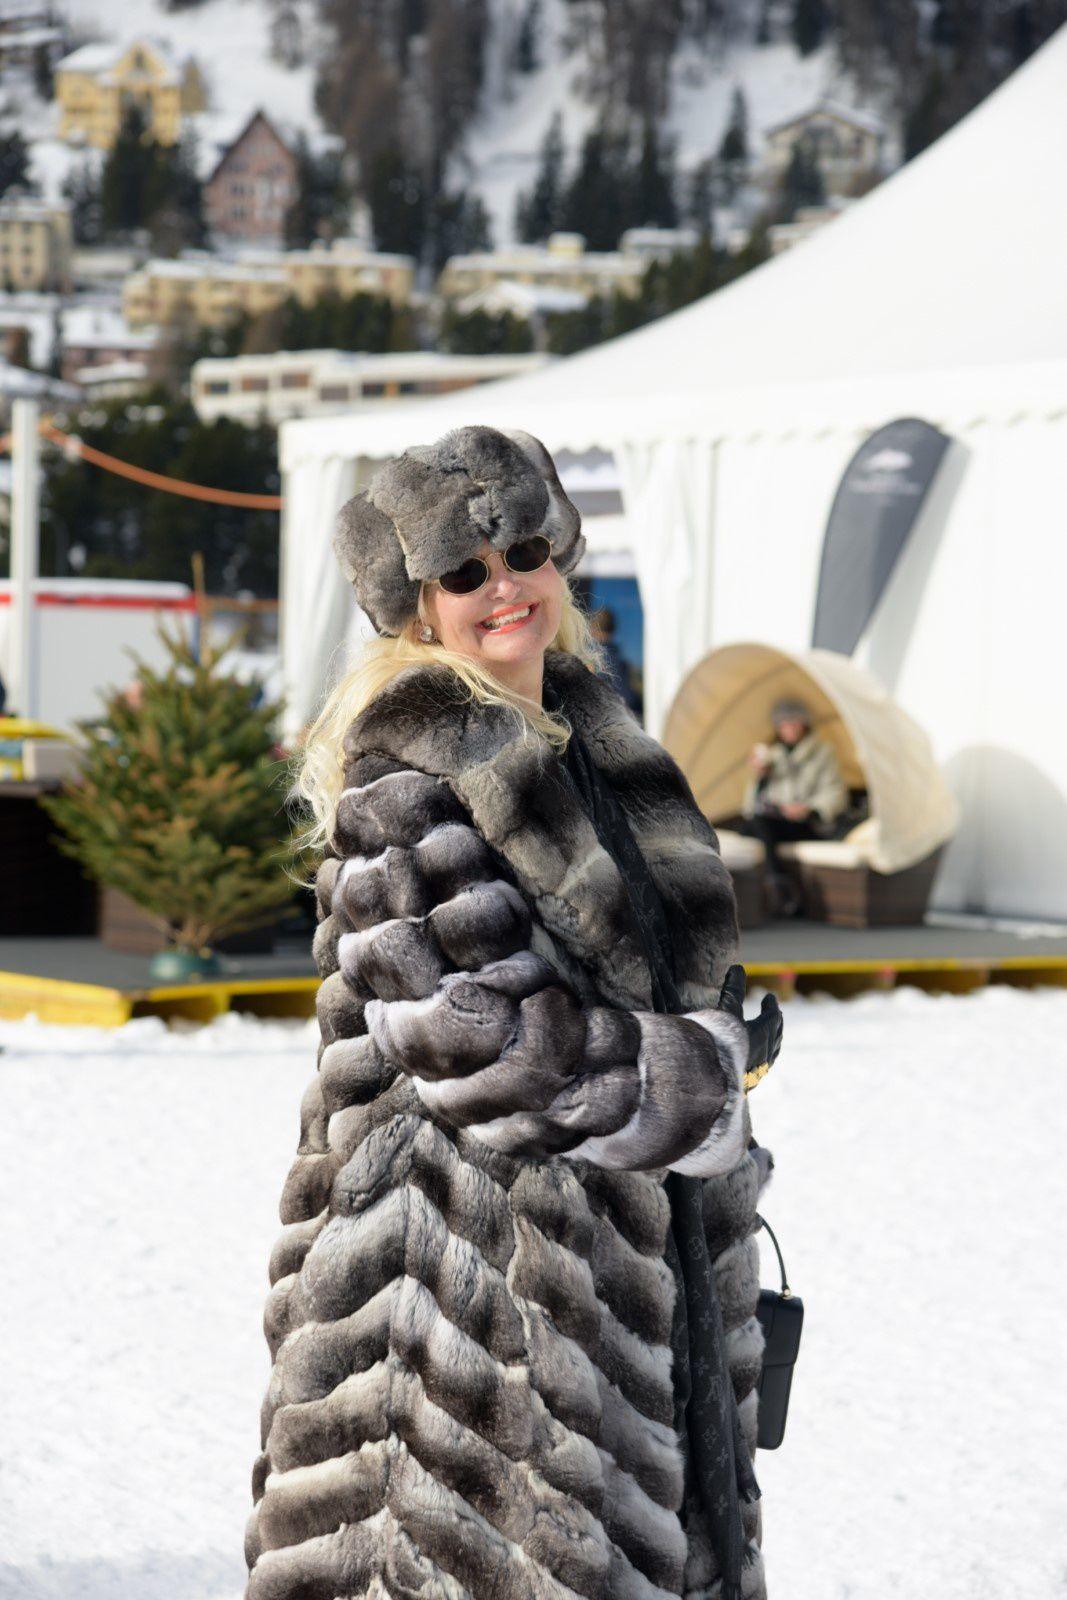 ST.MORITZ 2018: NEIGE, SPORTS, GLAMOUR, TOP OF THE WORLD AVEC LA MARQUISE ROBERTA GILARDI